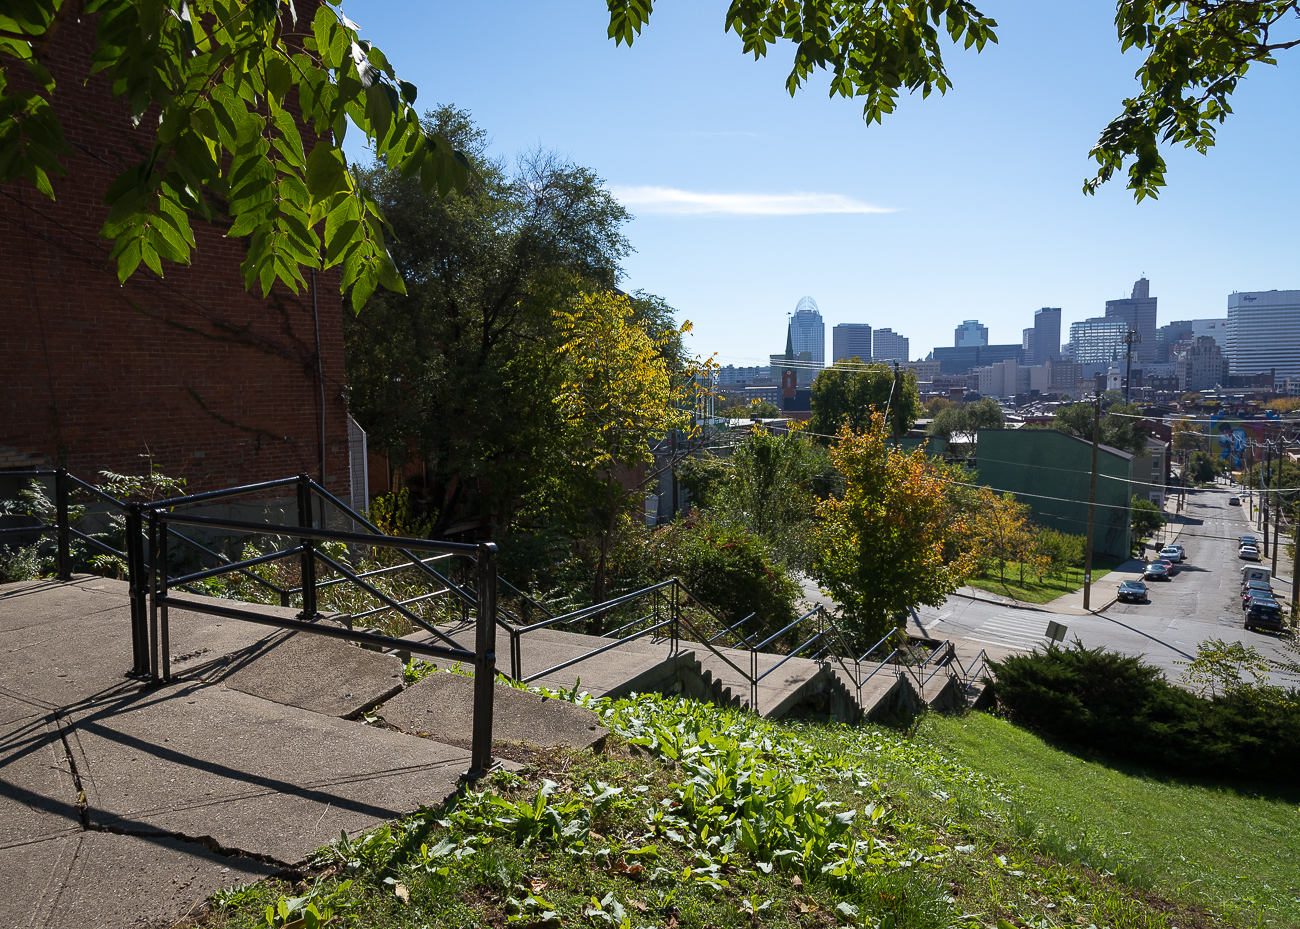 These public stairs, known as the Main Street Steps, follow the path of the former incline. While walking up the stairs today, it's immediately apparent that the view of the city below would've been a sight to behold from the incline platform. / Image: Phil Armstrong, Cincinnati Refined // Published: 1.2.19